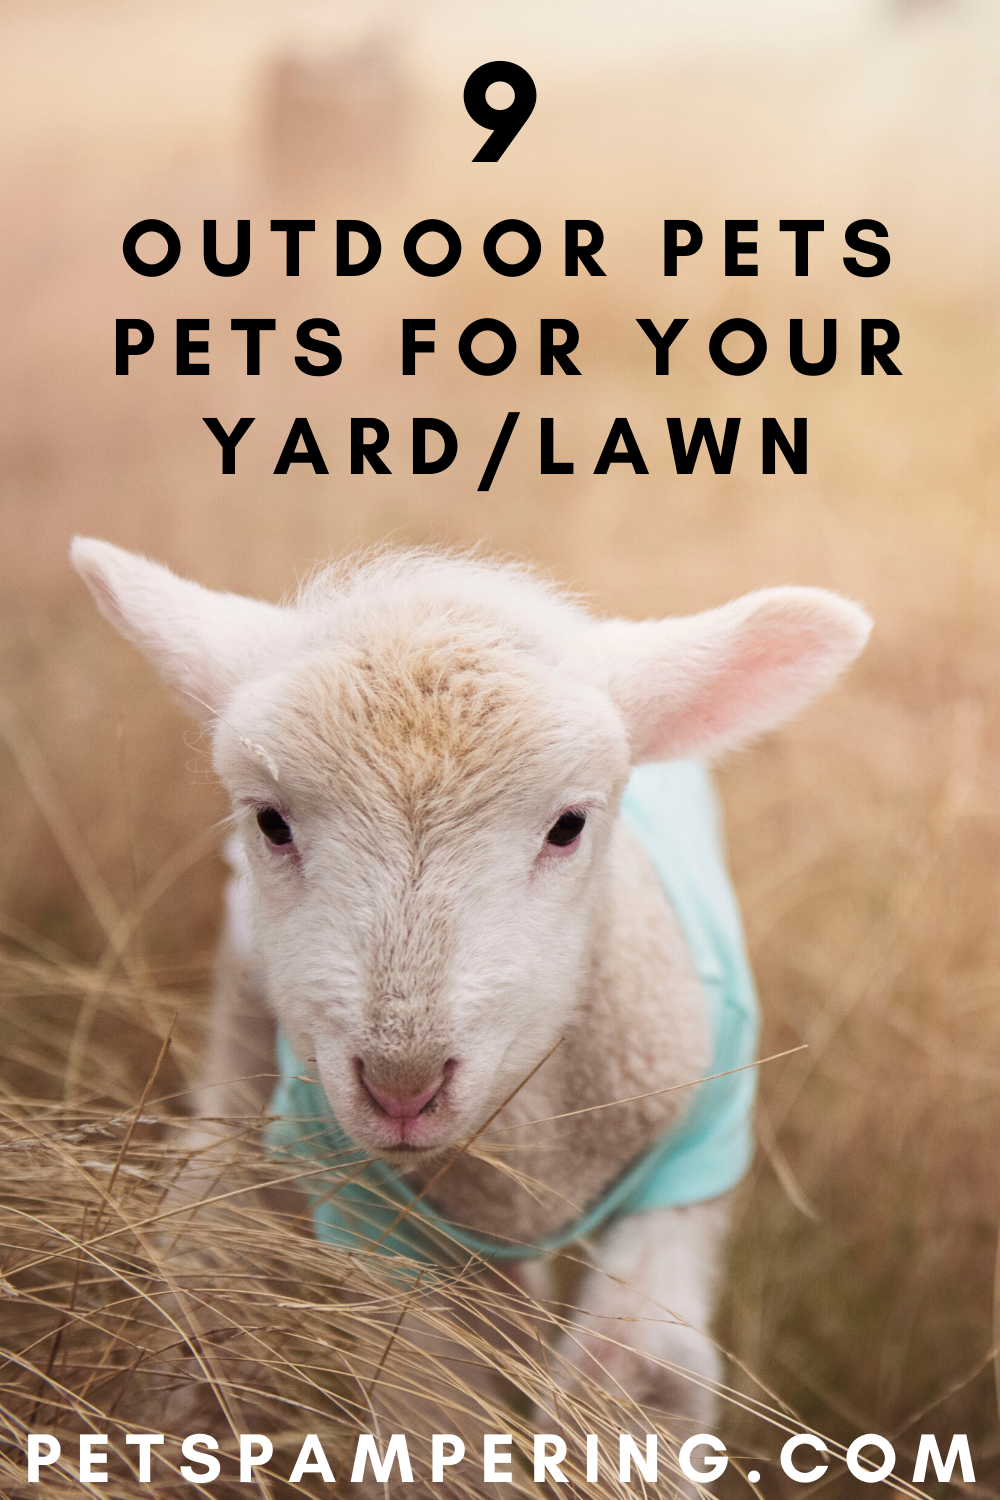 What are Good Outdoor Pets?  Many kids ask me what are the kind of pets to keep outdoors as they have not permission to keep the pet indoors by their parents. Well for that I have done the research and came up with the following choices.  #pets #petstagram #petsofinstagram #petsagram #petsofig #petshop #petscorner #petsgram #petsitting #petsmart #petsitter #petsofinsta #petsoninstagram #petsarefamily #petslover